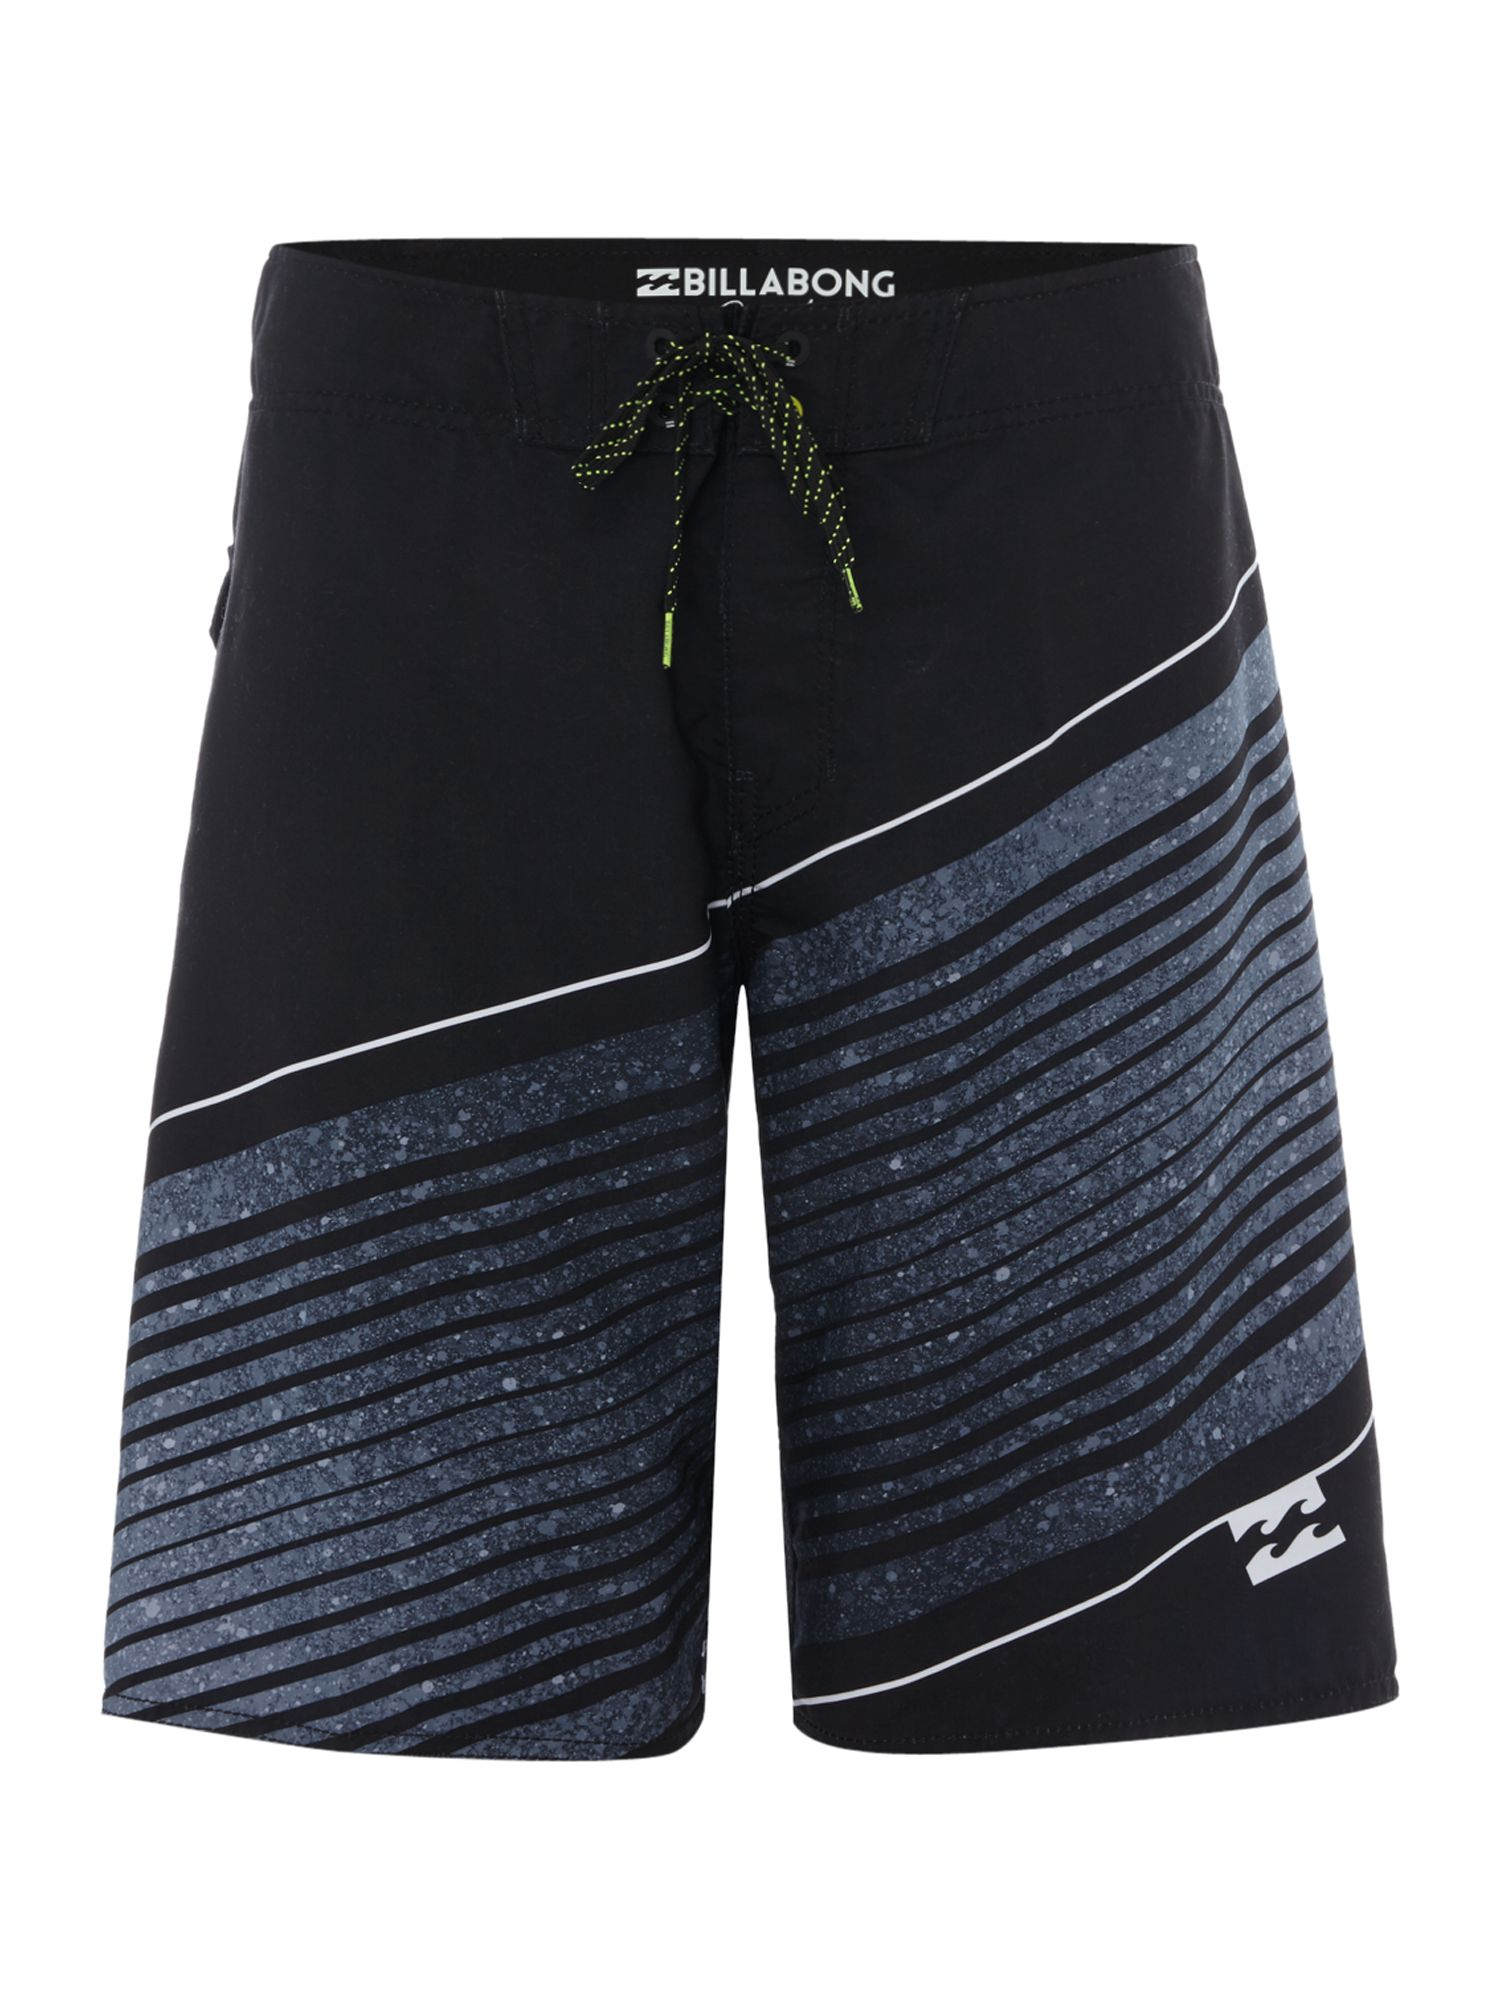 Men's Billabong Core Fit Surf Short, Black